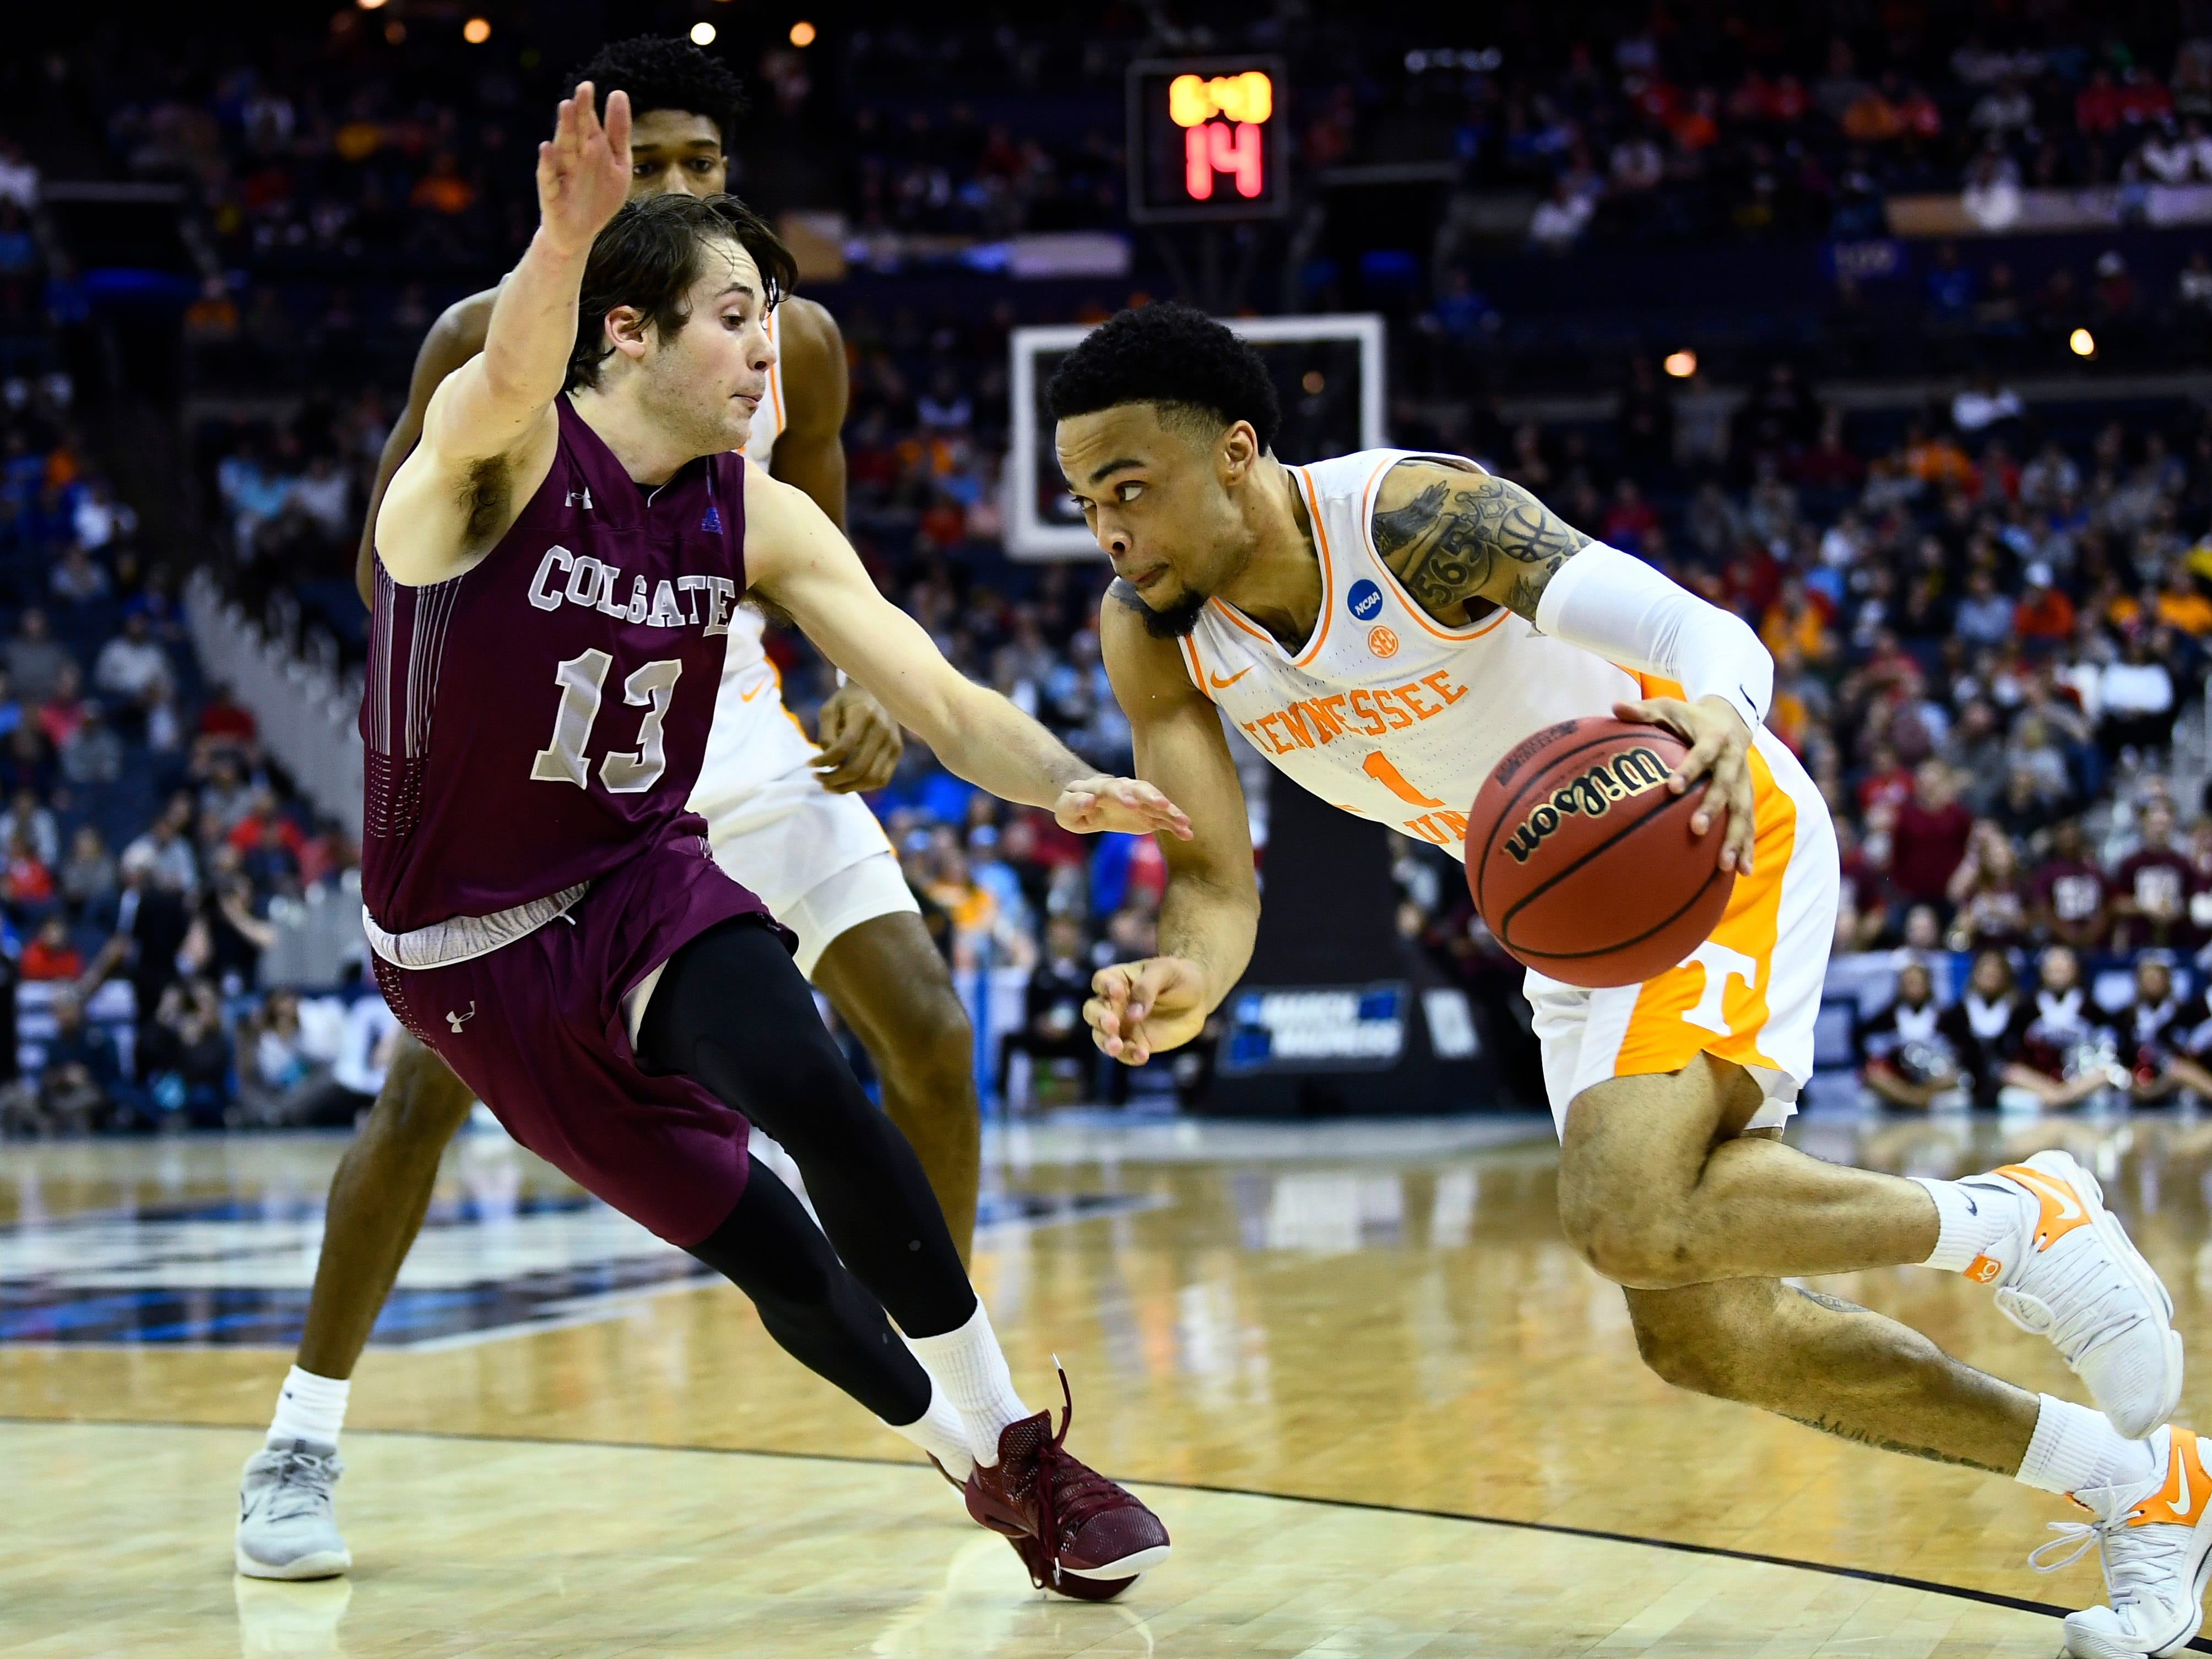 Tennessee guard Lamonte Turner (1) drives past Colgate guard Jack Ferguson (13) during their first round game of the NCAA Tournament at Nationwide Arena in Columbus, Ohio, on Friday, March 22, 2019.